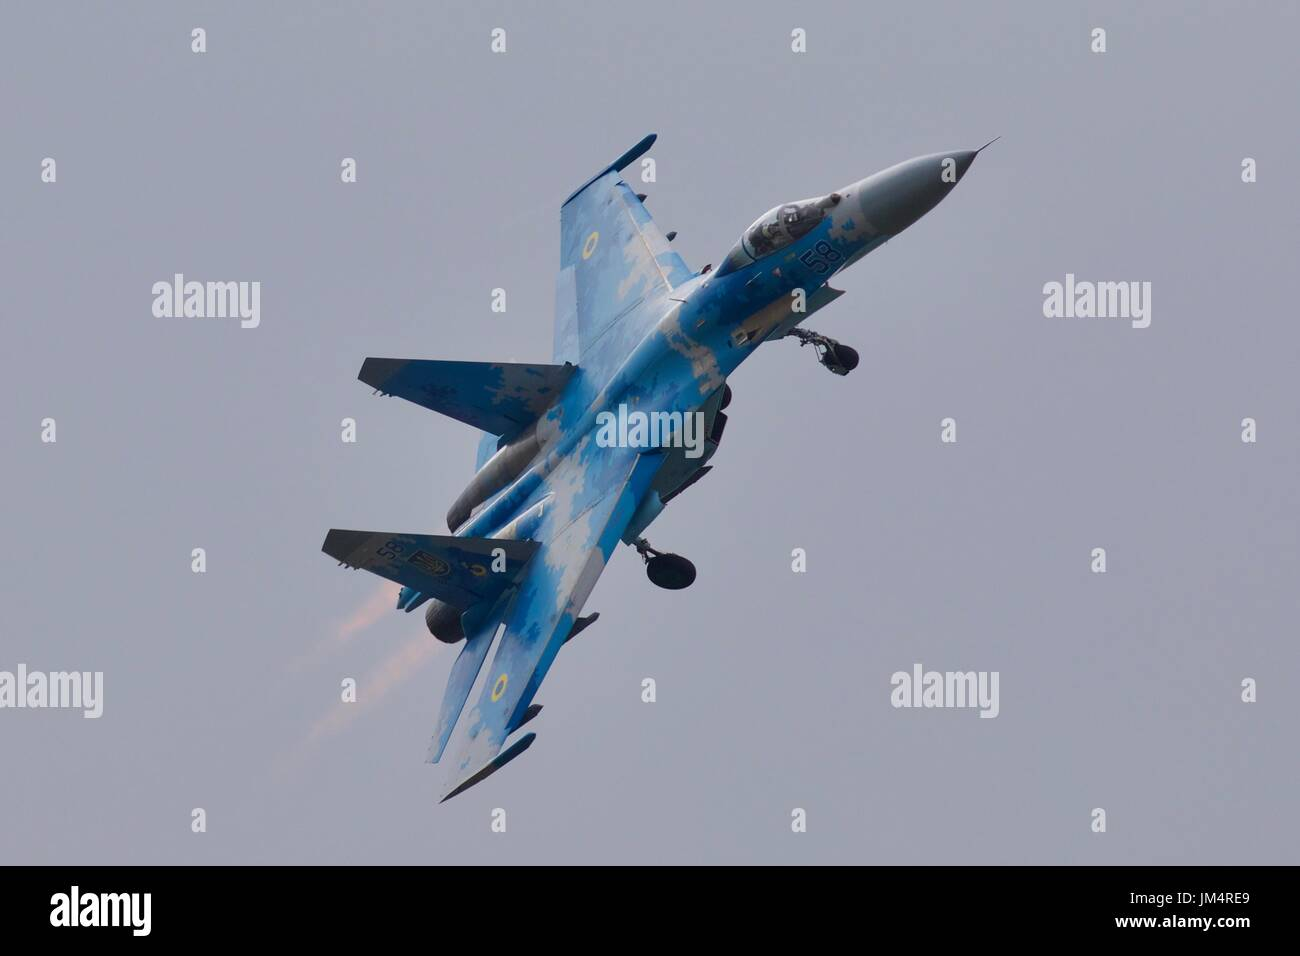 Ukrainian Air Force Sukhoi Su-27 with its undercarriage deployed - Stock Image